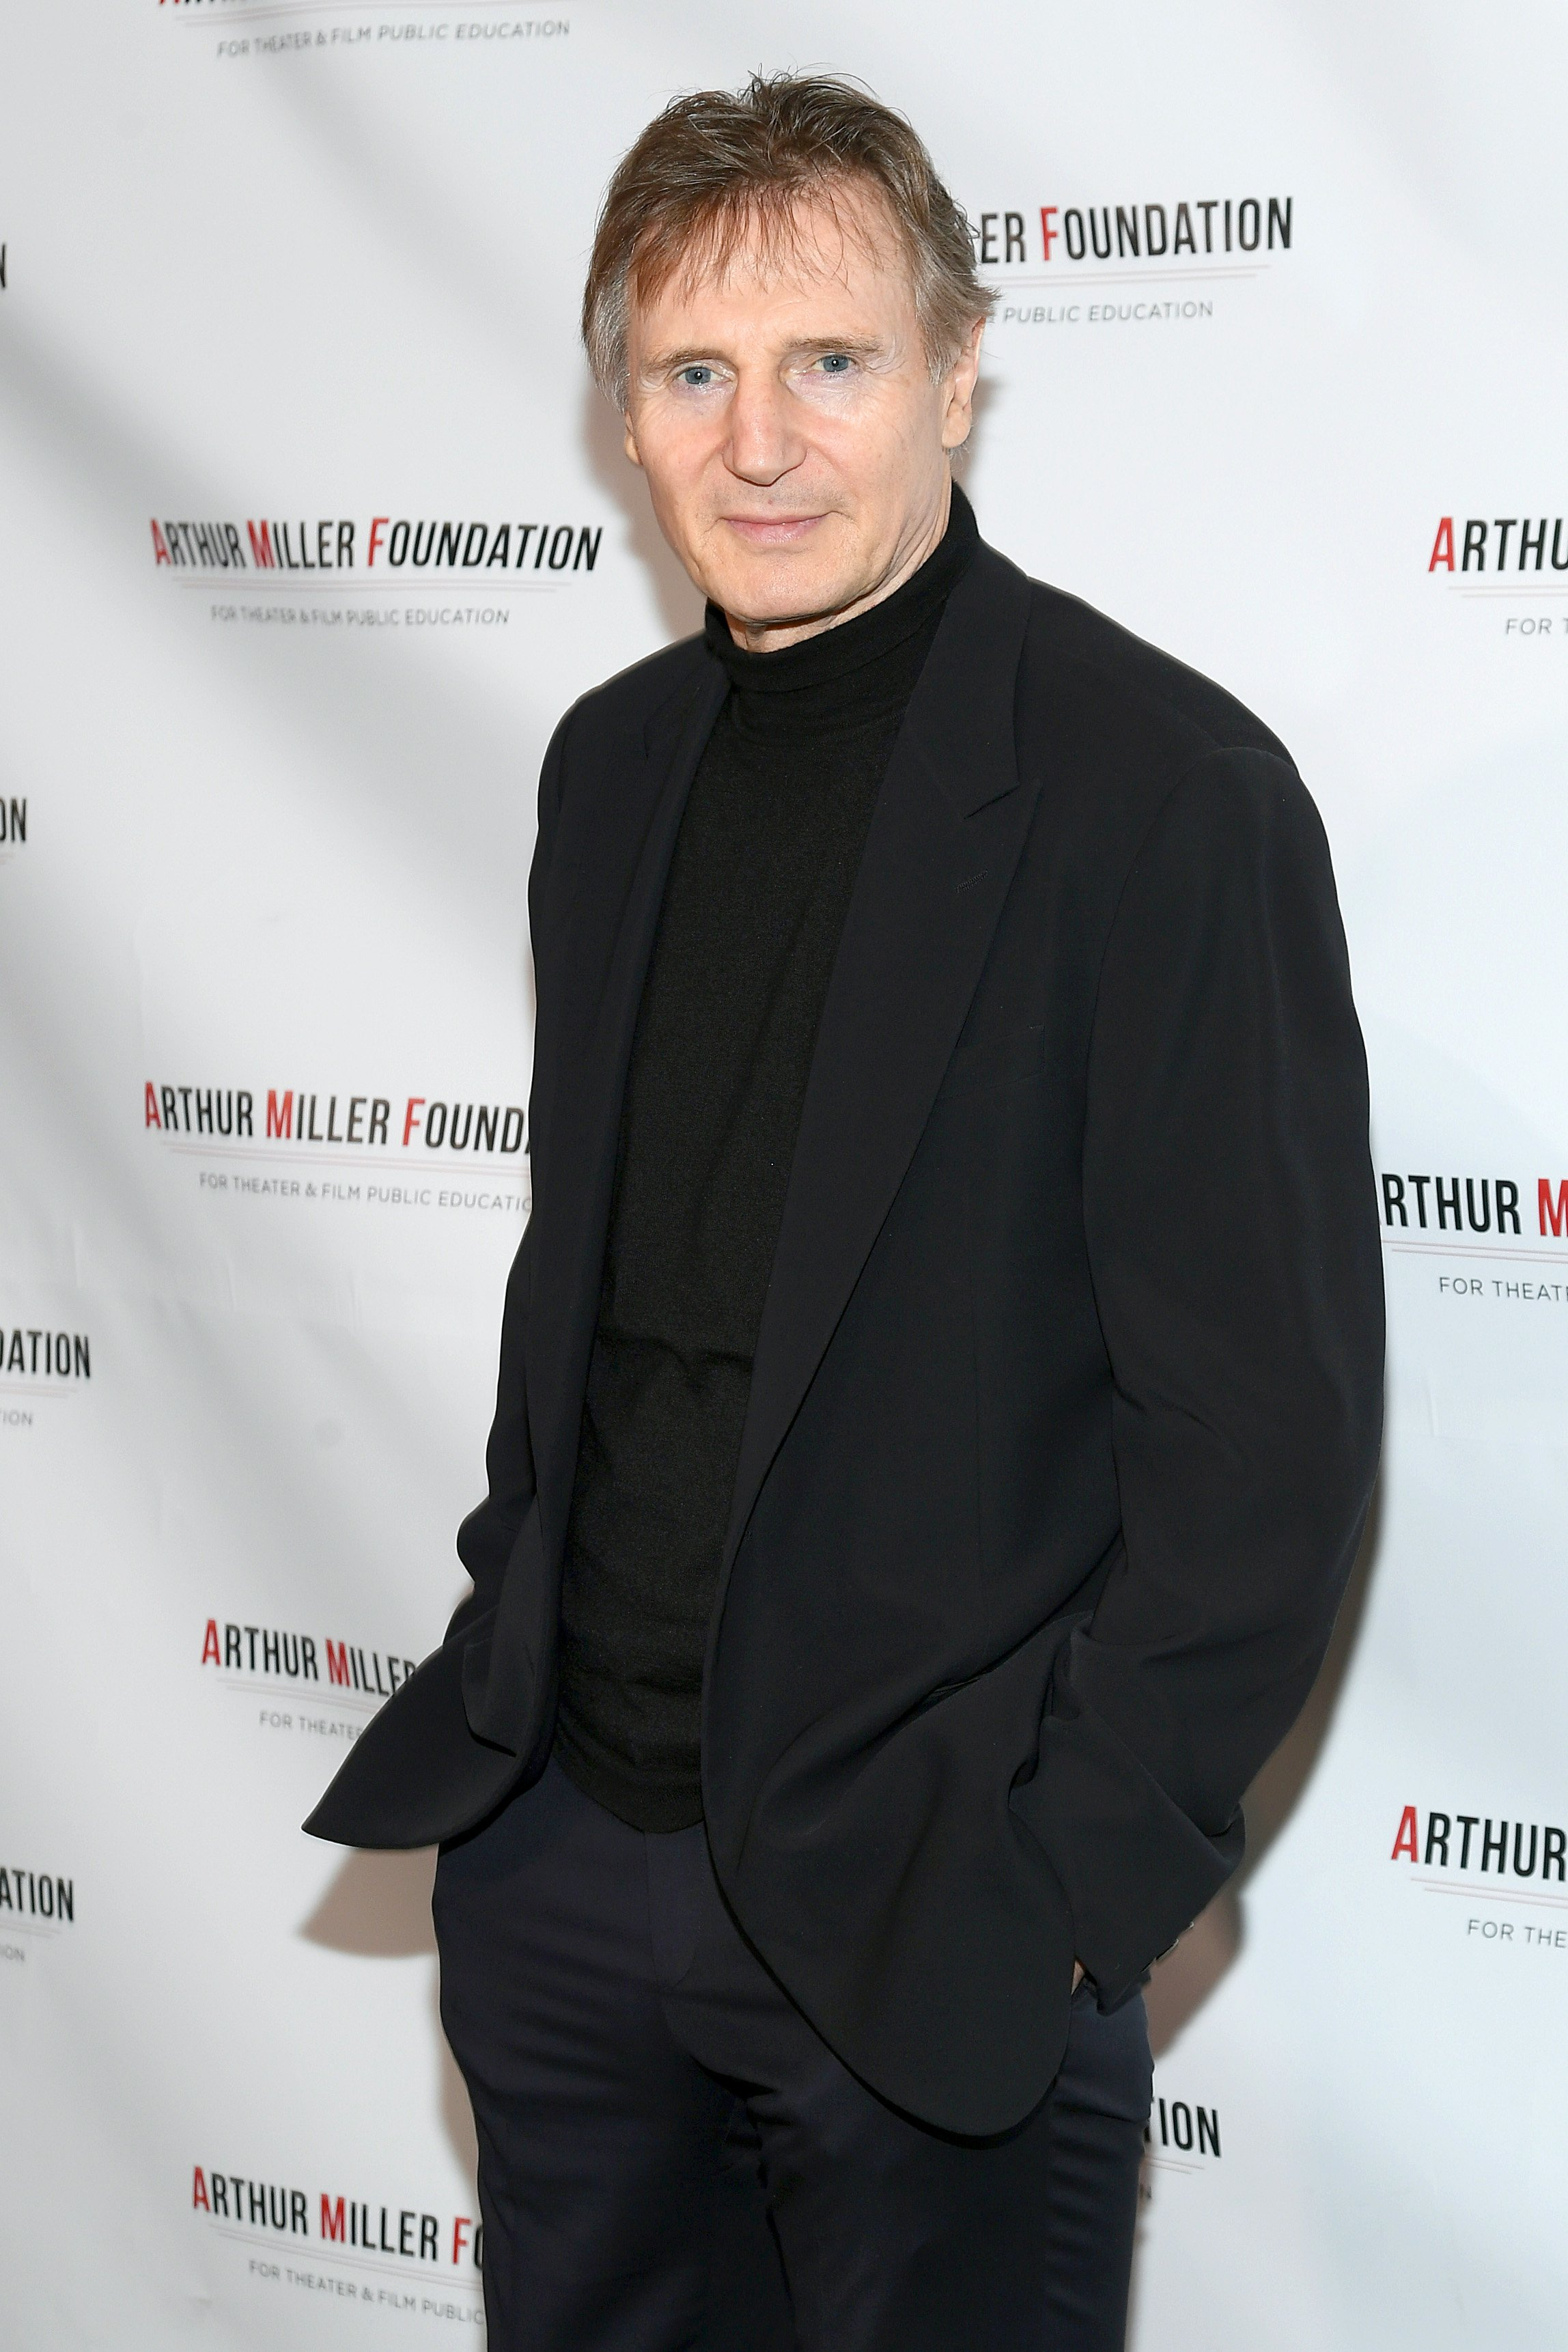 Liam Neeson at the 2018 Arthur Miller Foundation Honors in NYC on October 22, 2018. | Photo: Getty Images.